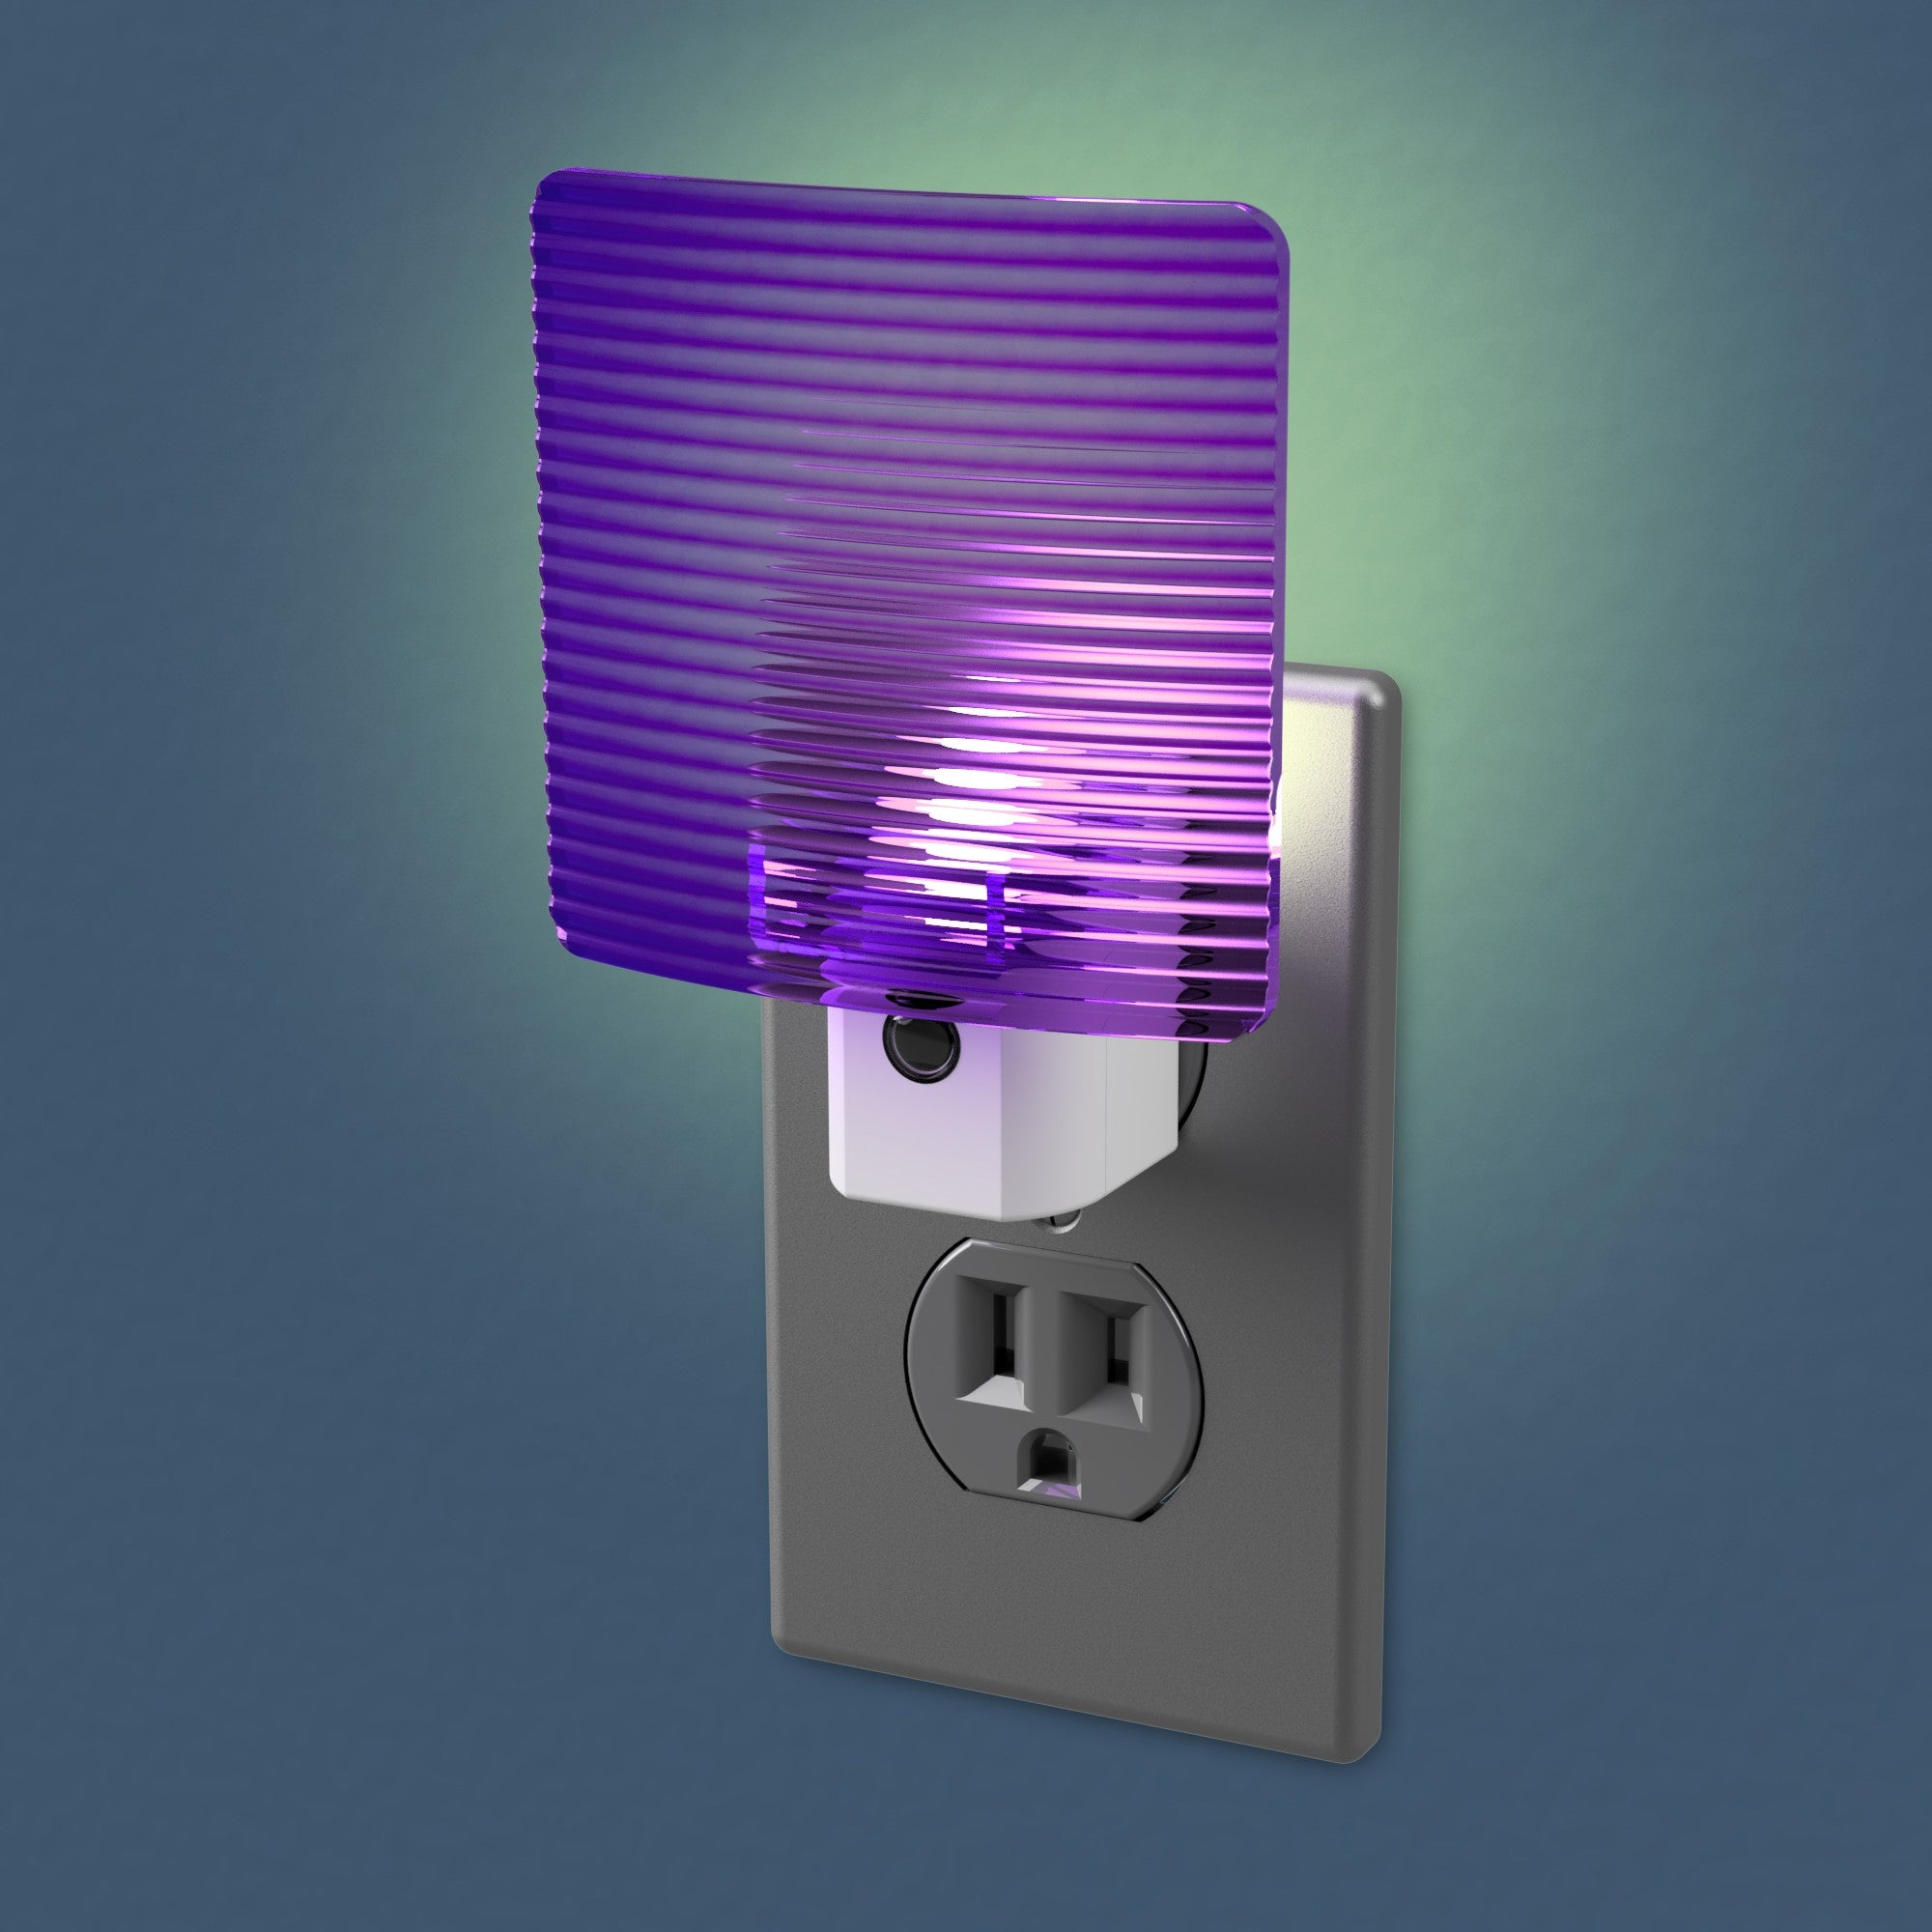 Wave Screen LED Night Light | NL-WAVE-TL, NL-WAVE-BL, NL-WAVE-PL